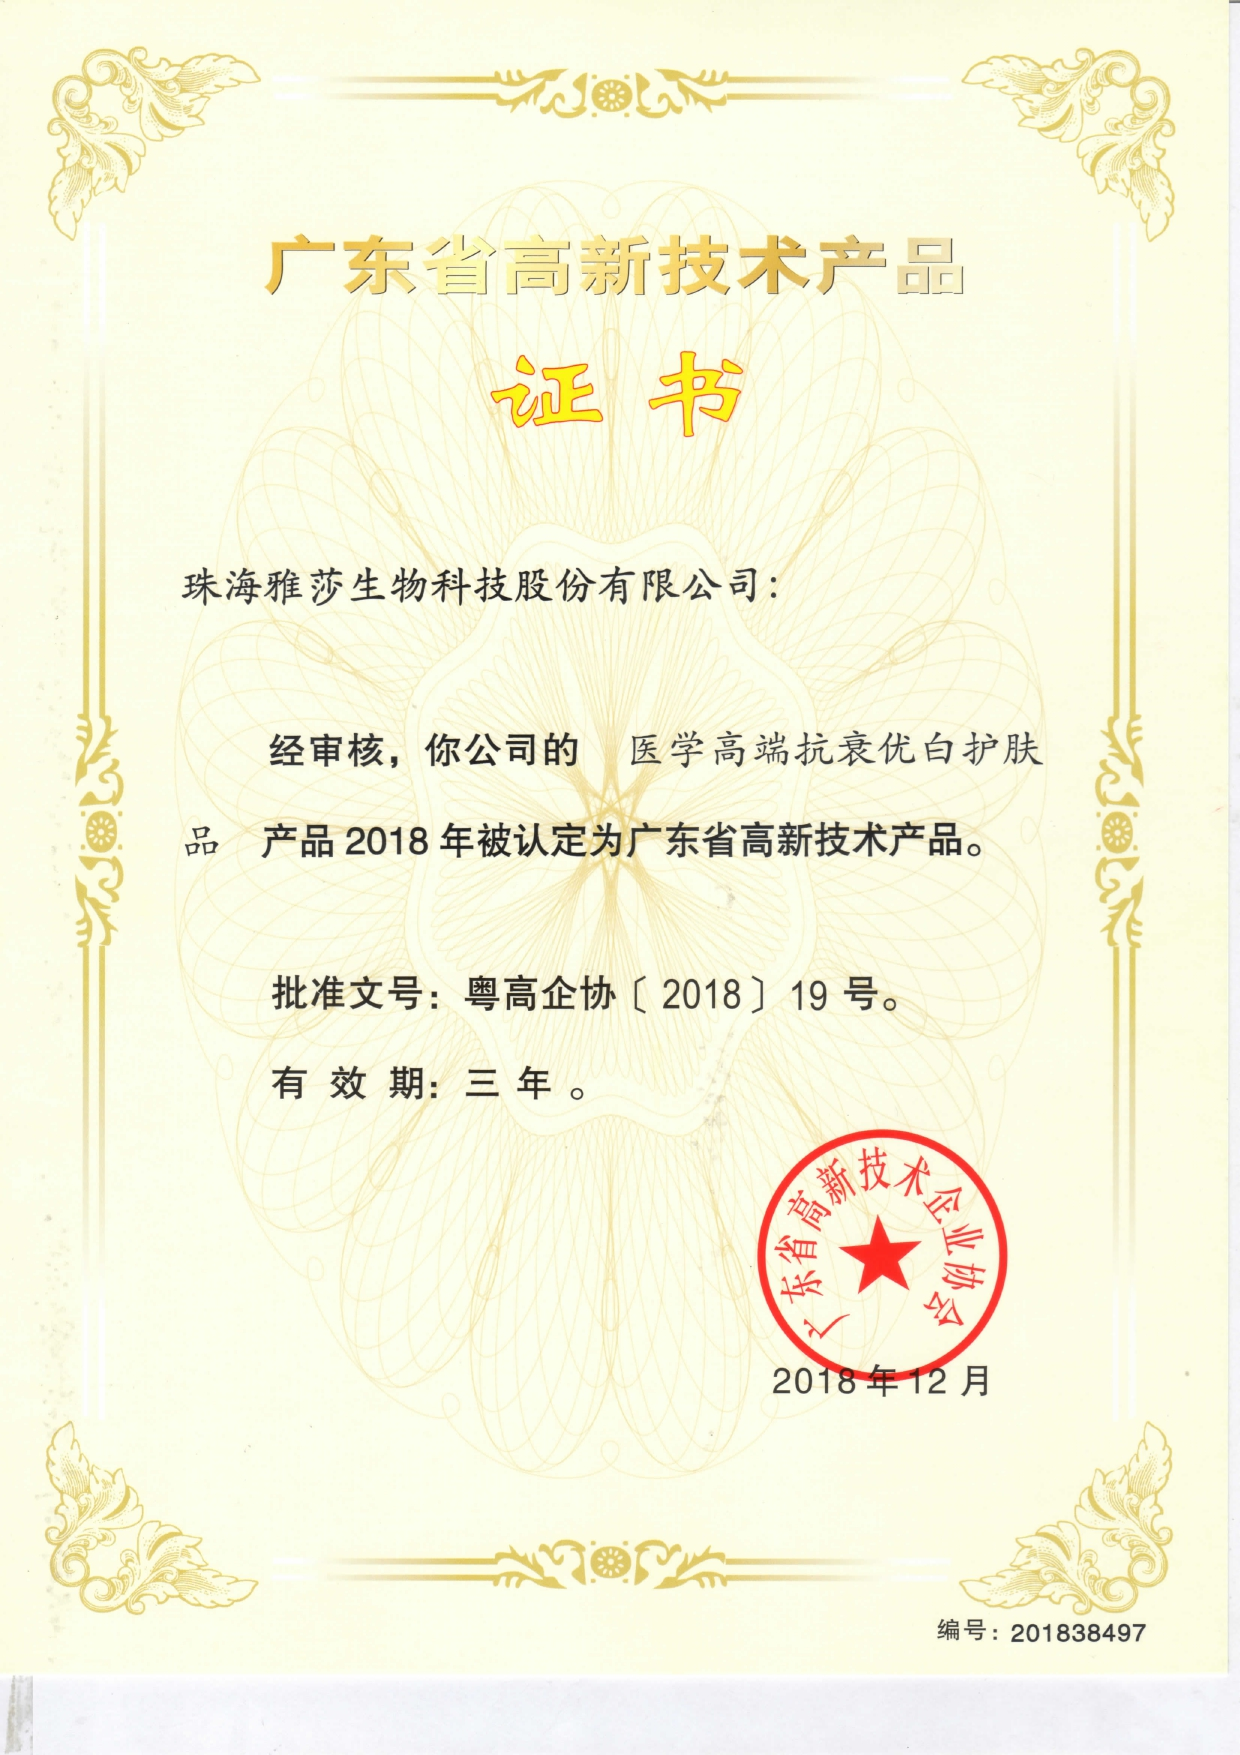 (Whitening Essence) Certificate of Guangdong Province New High-Tech Product